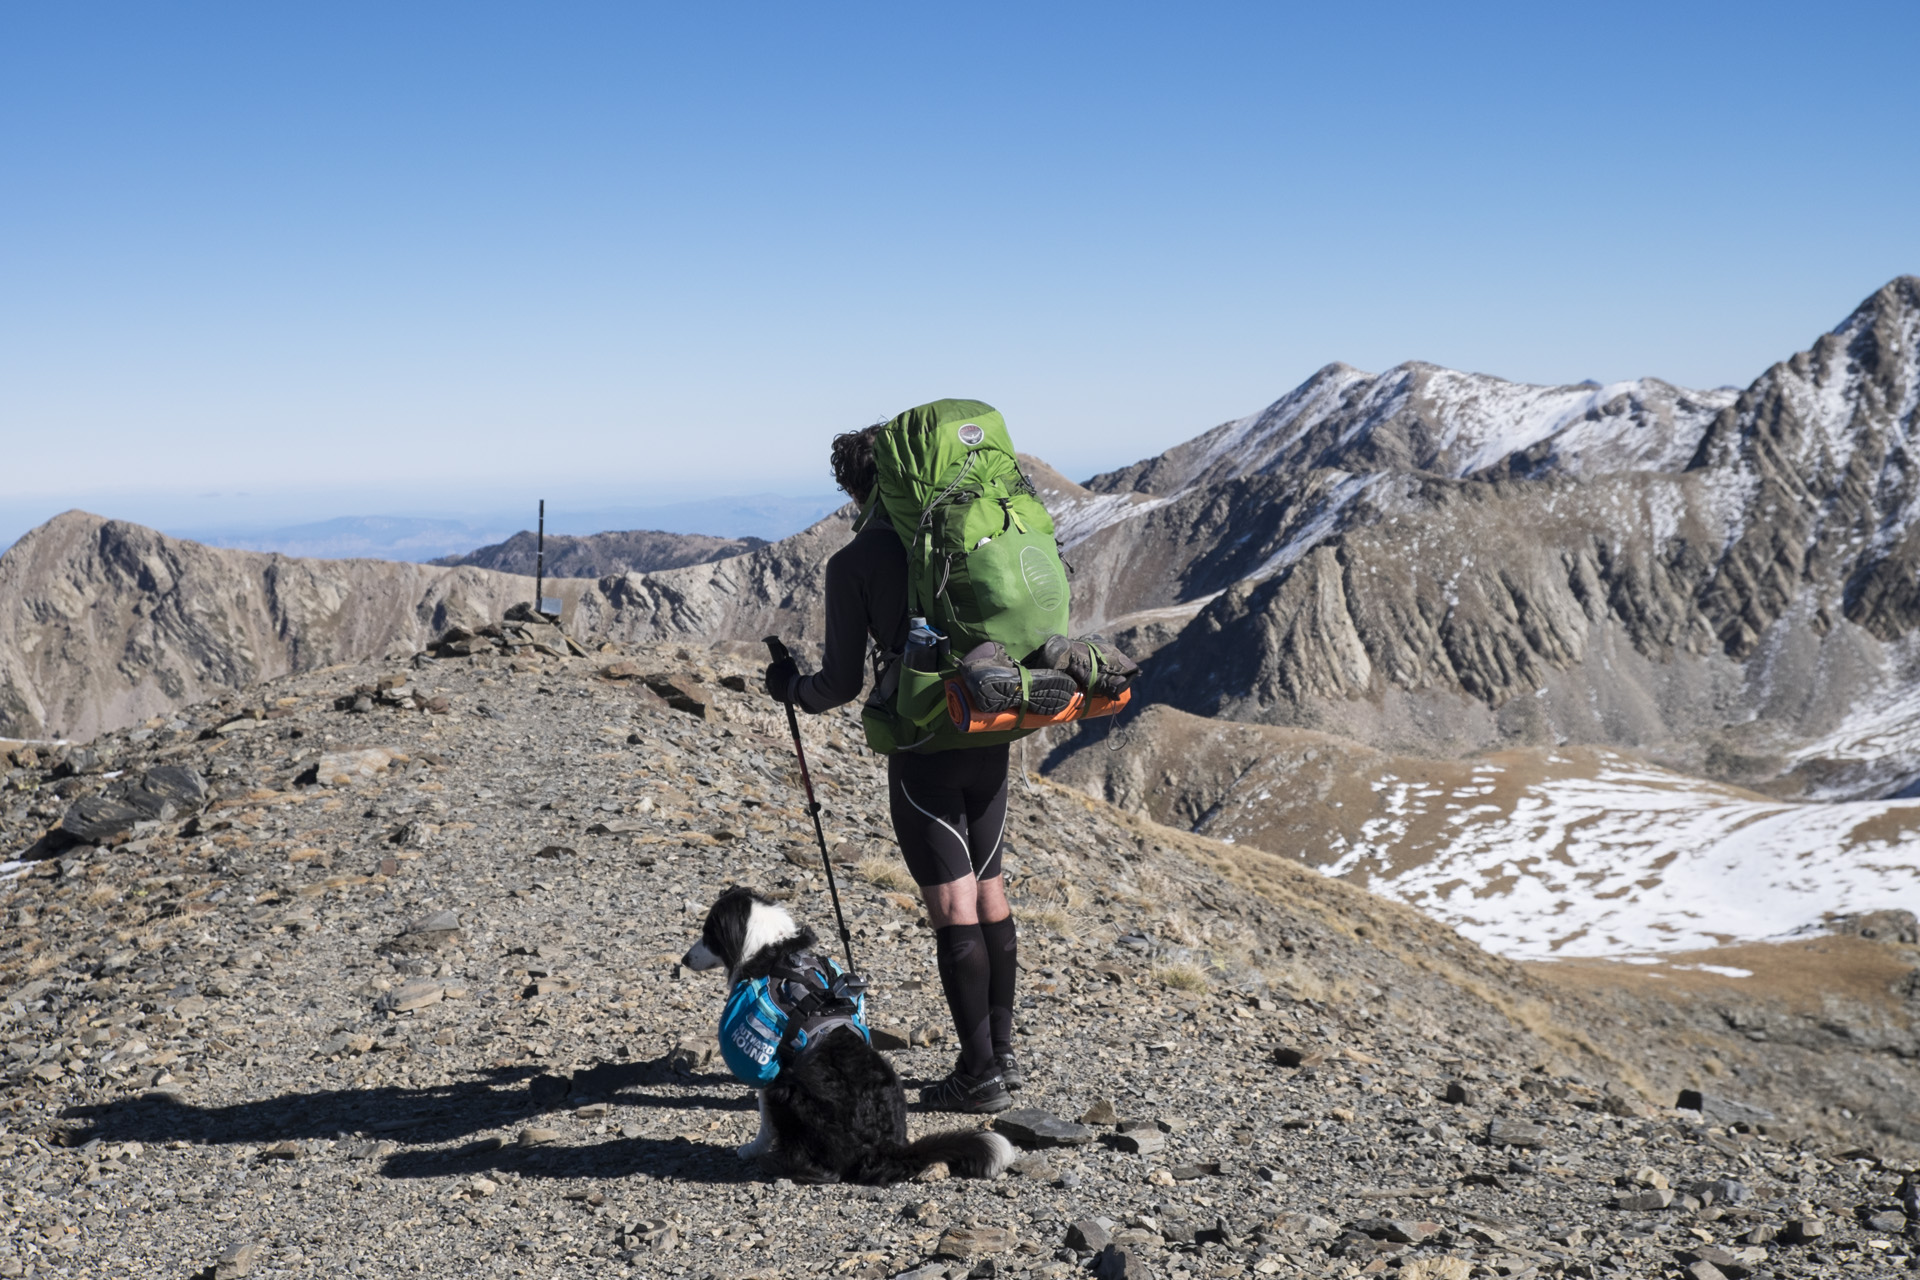 The last high pass of the trail after Nuria.